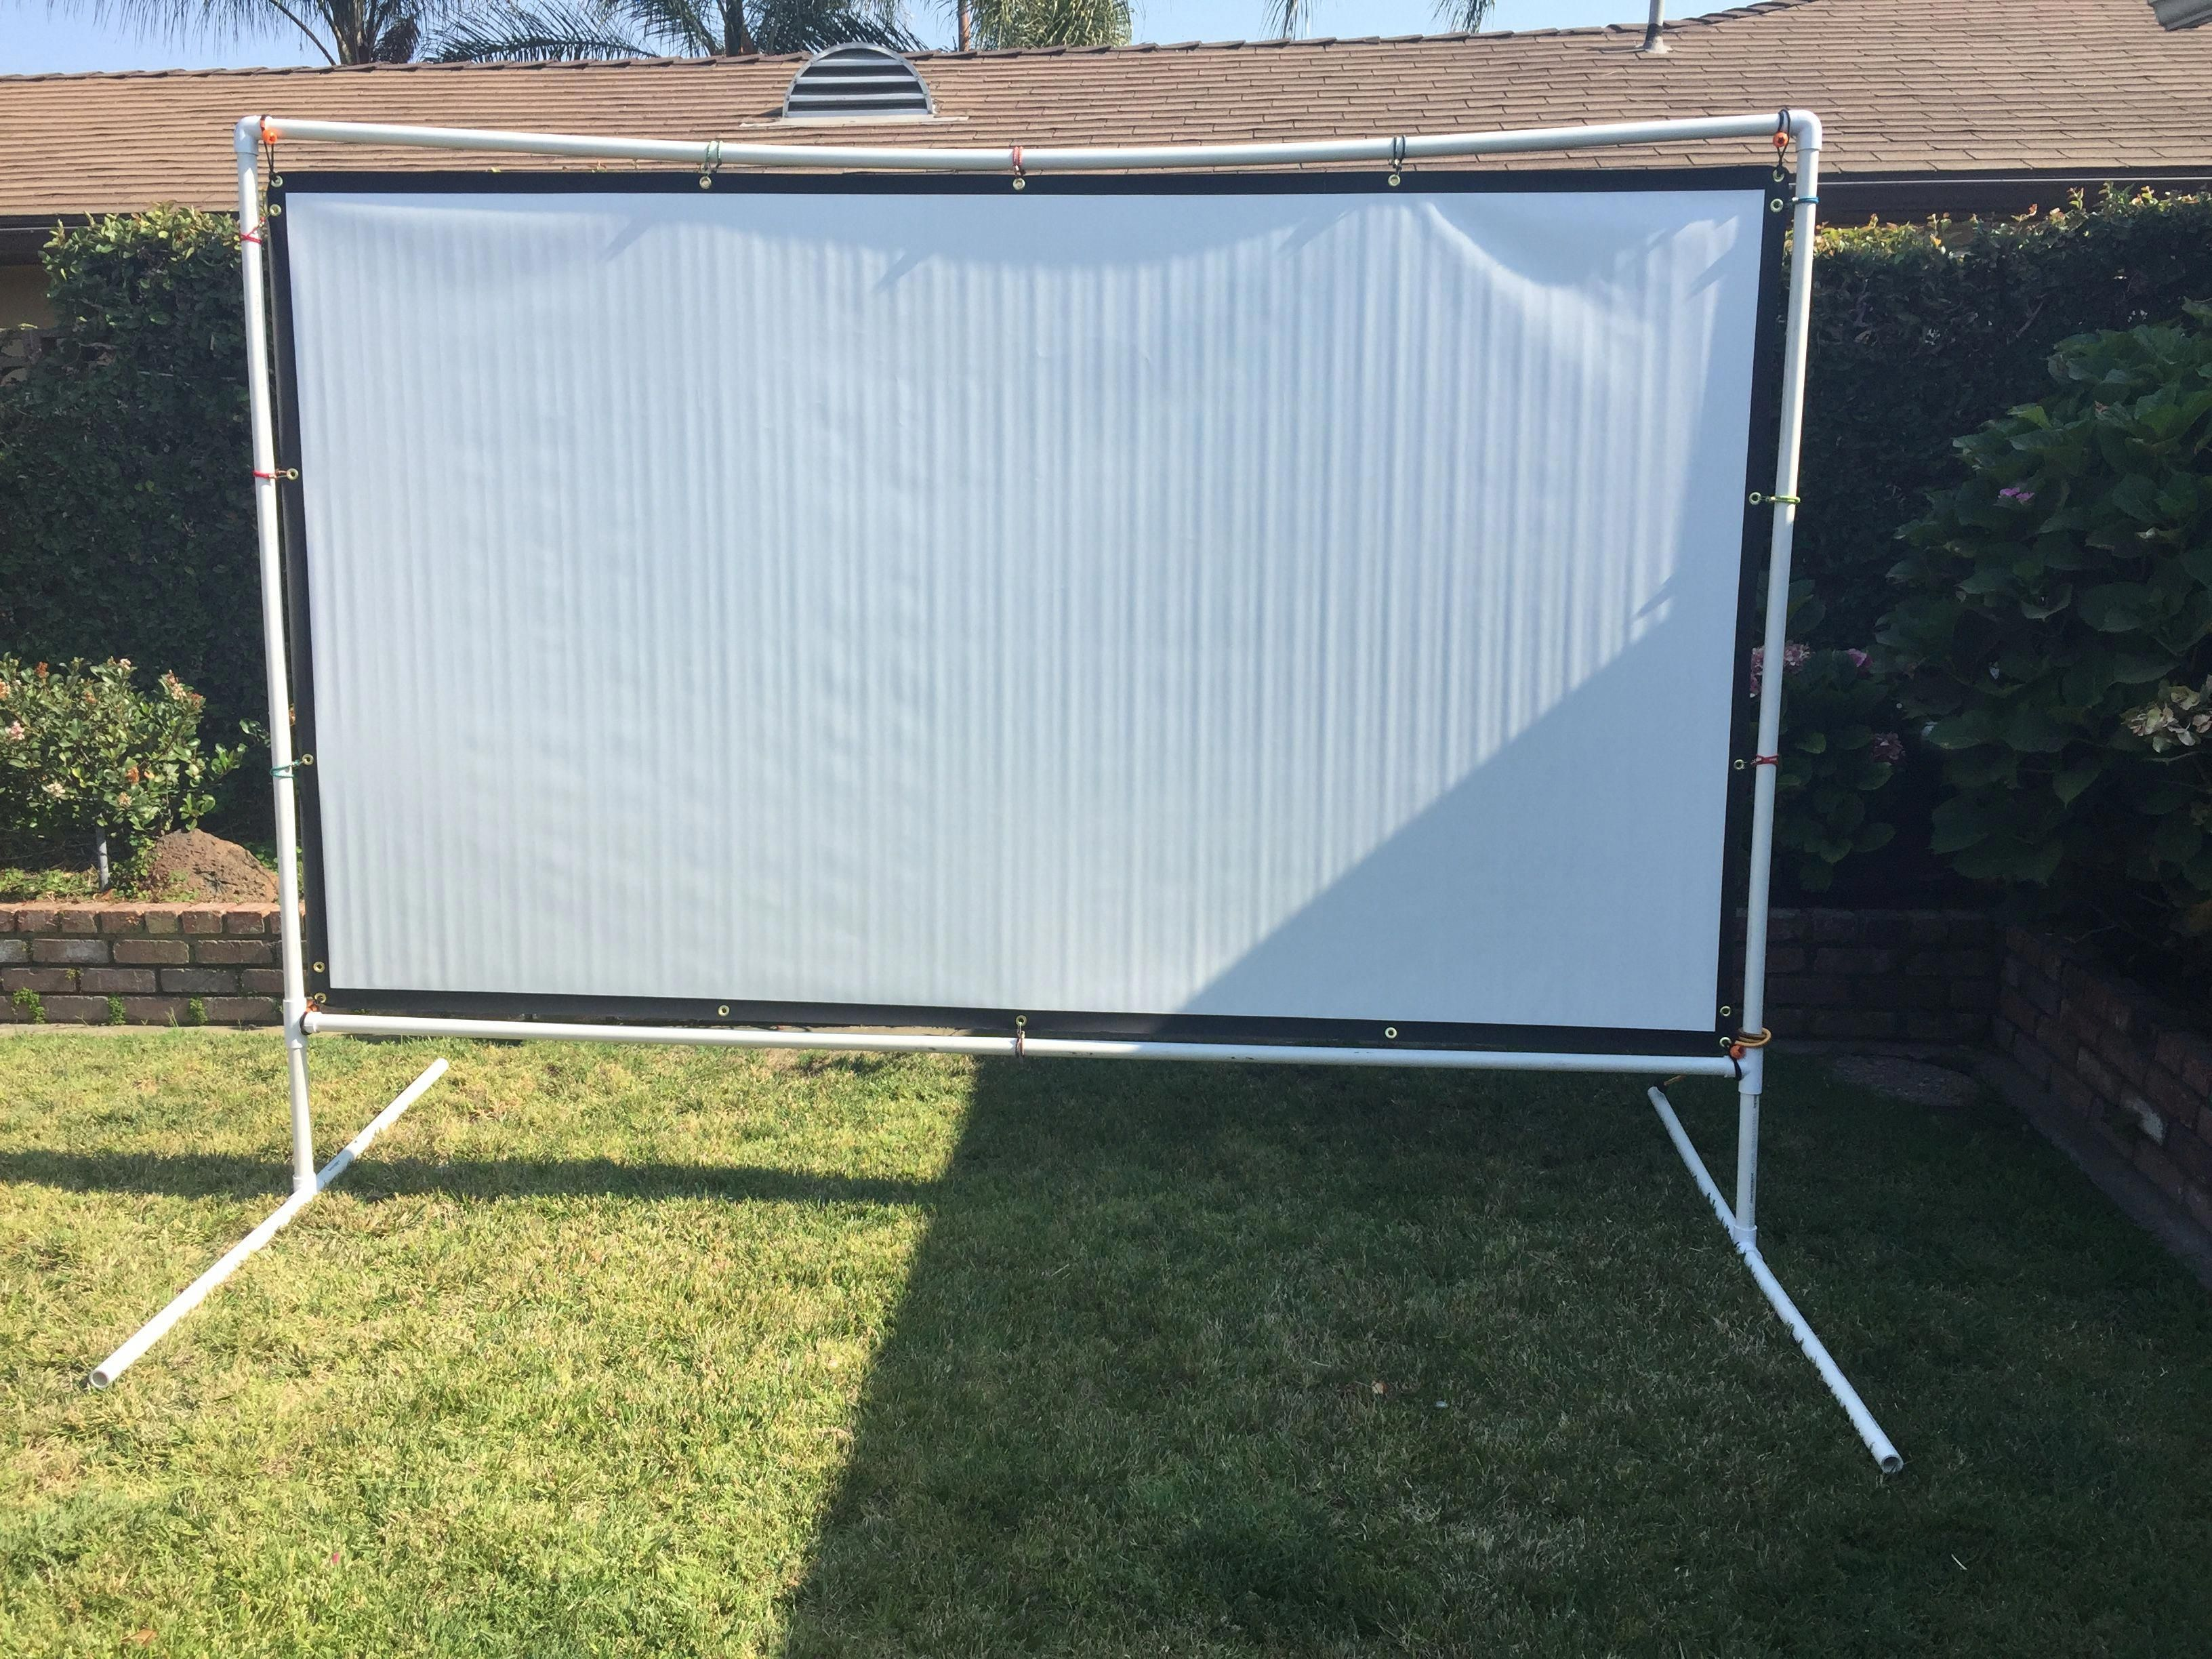 120 Projector Screen With Pvc Frame Projectorscreen Outdoor Projector Screen Diy Projector Screen Diy Diy Outdoor Movie Screen